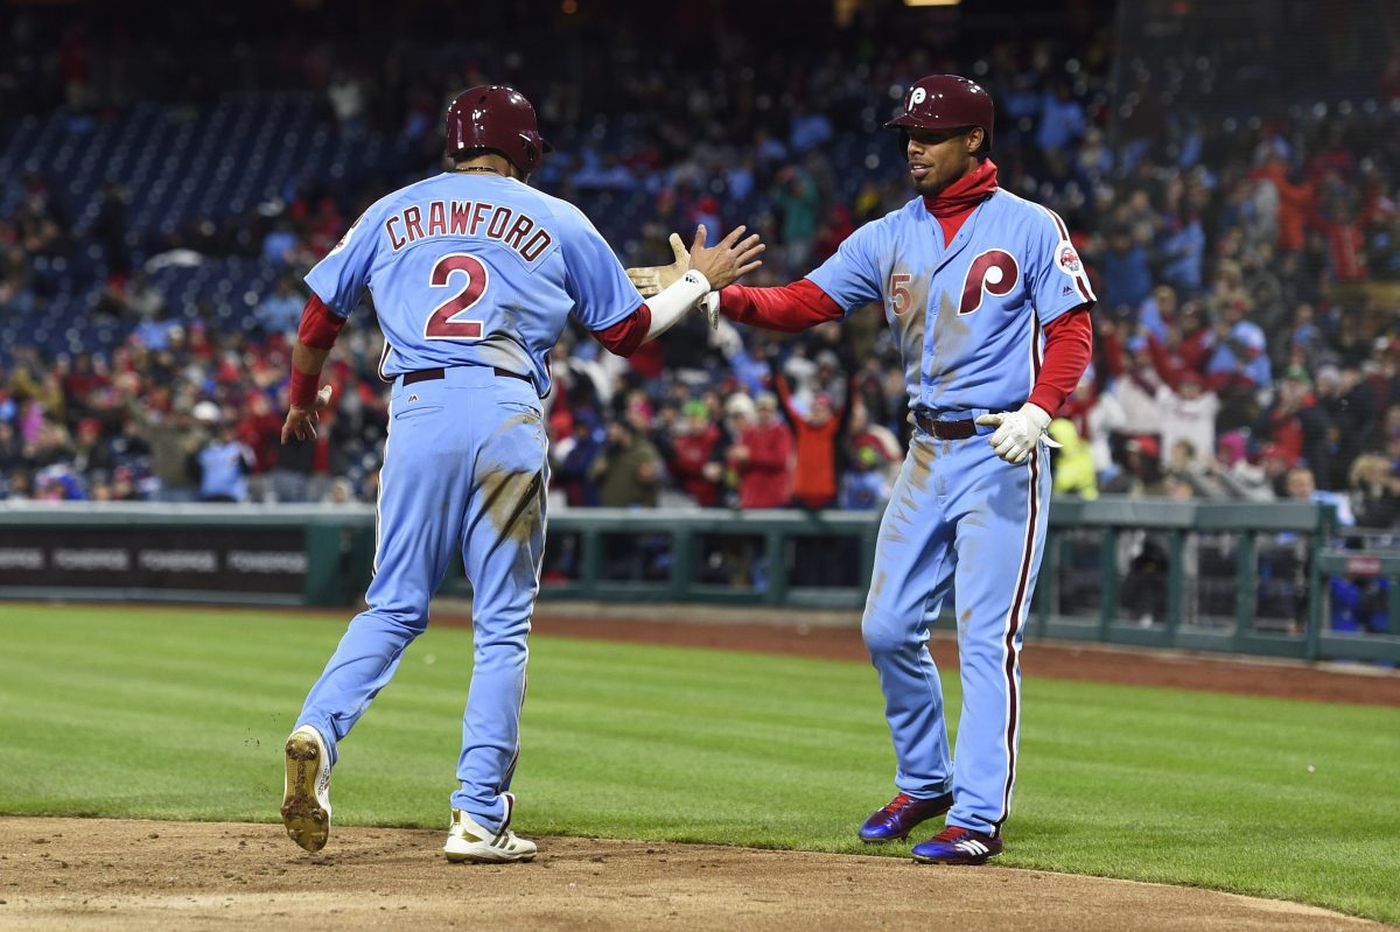 'Bold' jump by Phillies' J.P. Crawford leads to a three-run single that took 'big stones'